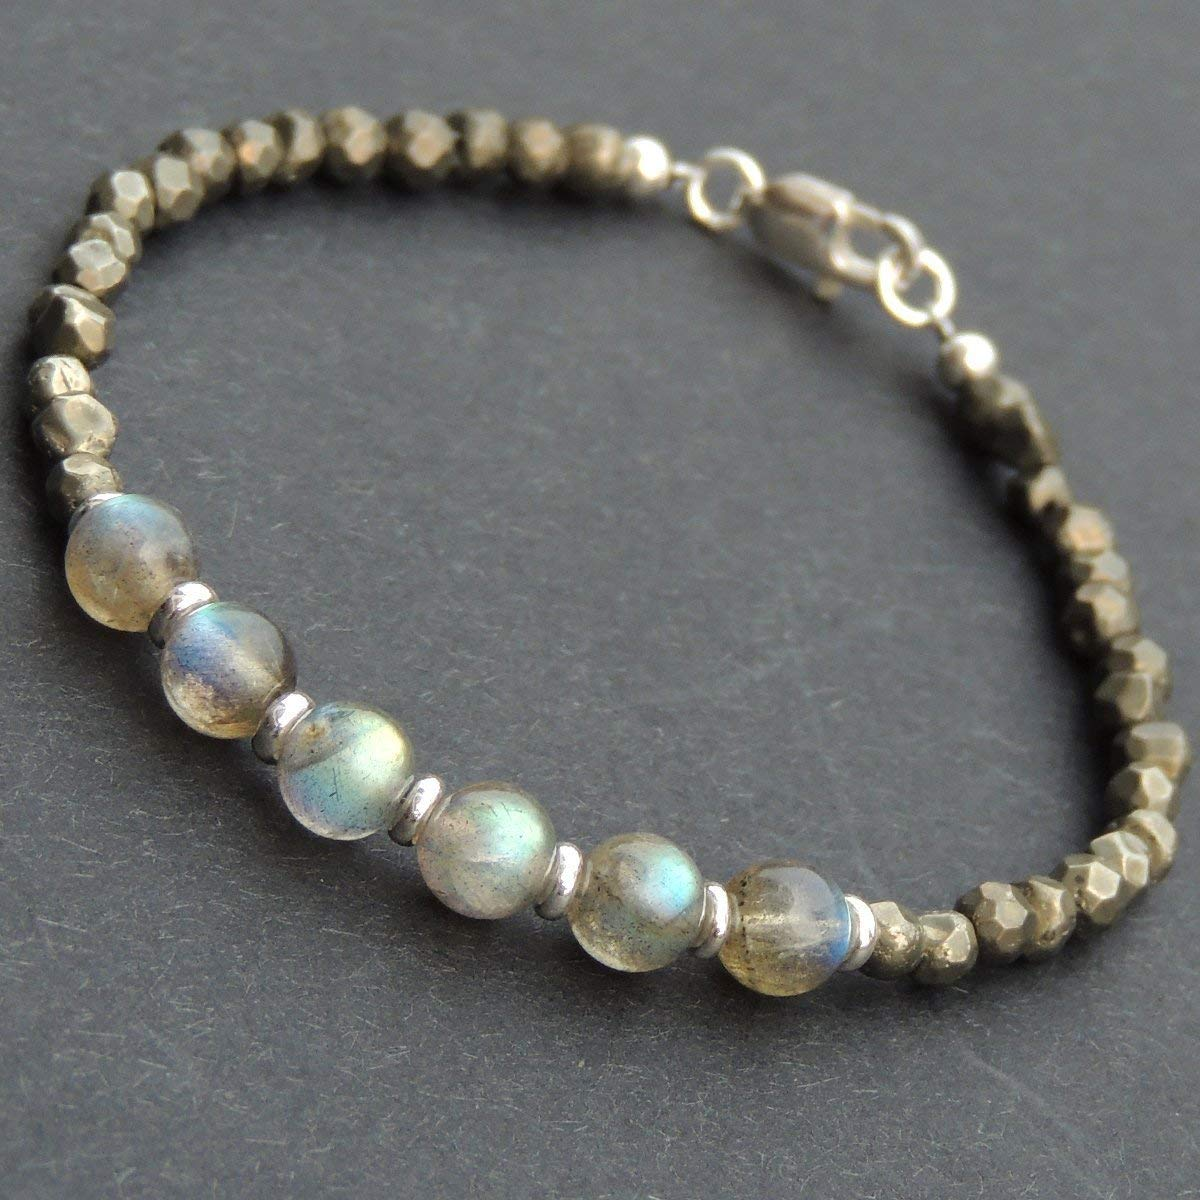 Men and Women Bracelet Handmade with Natural 4mm Faceted Gold Pyrite, Labradorite Beads and Genuine 925 Sterling Silver Spacers, Clasp & Beads